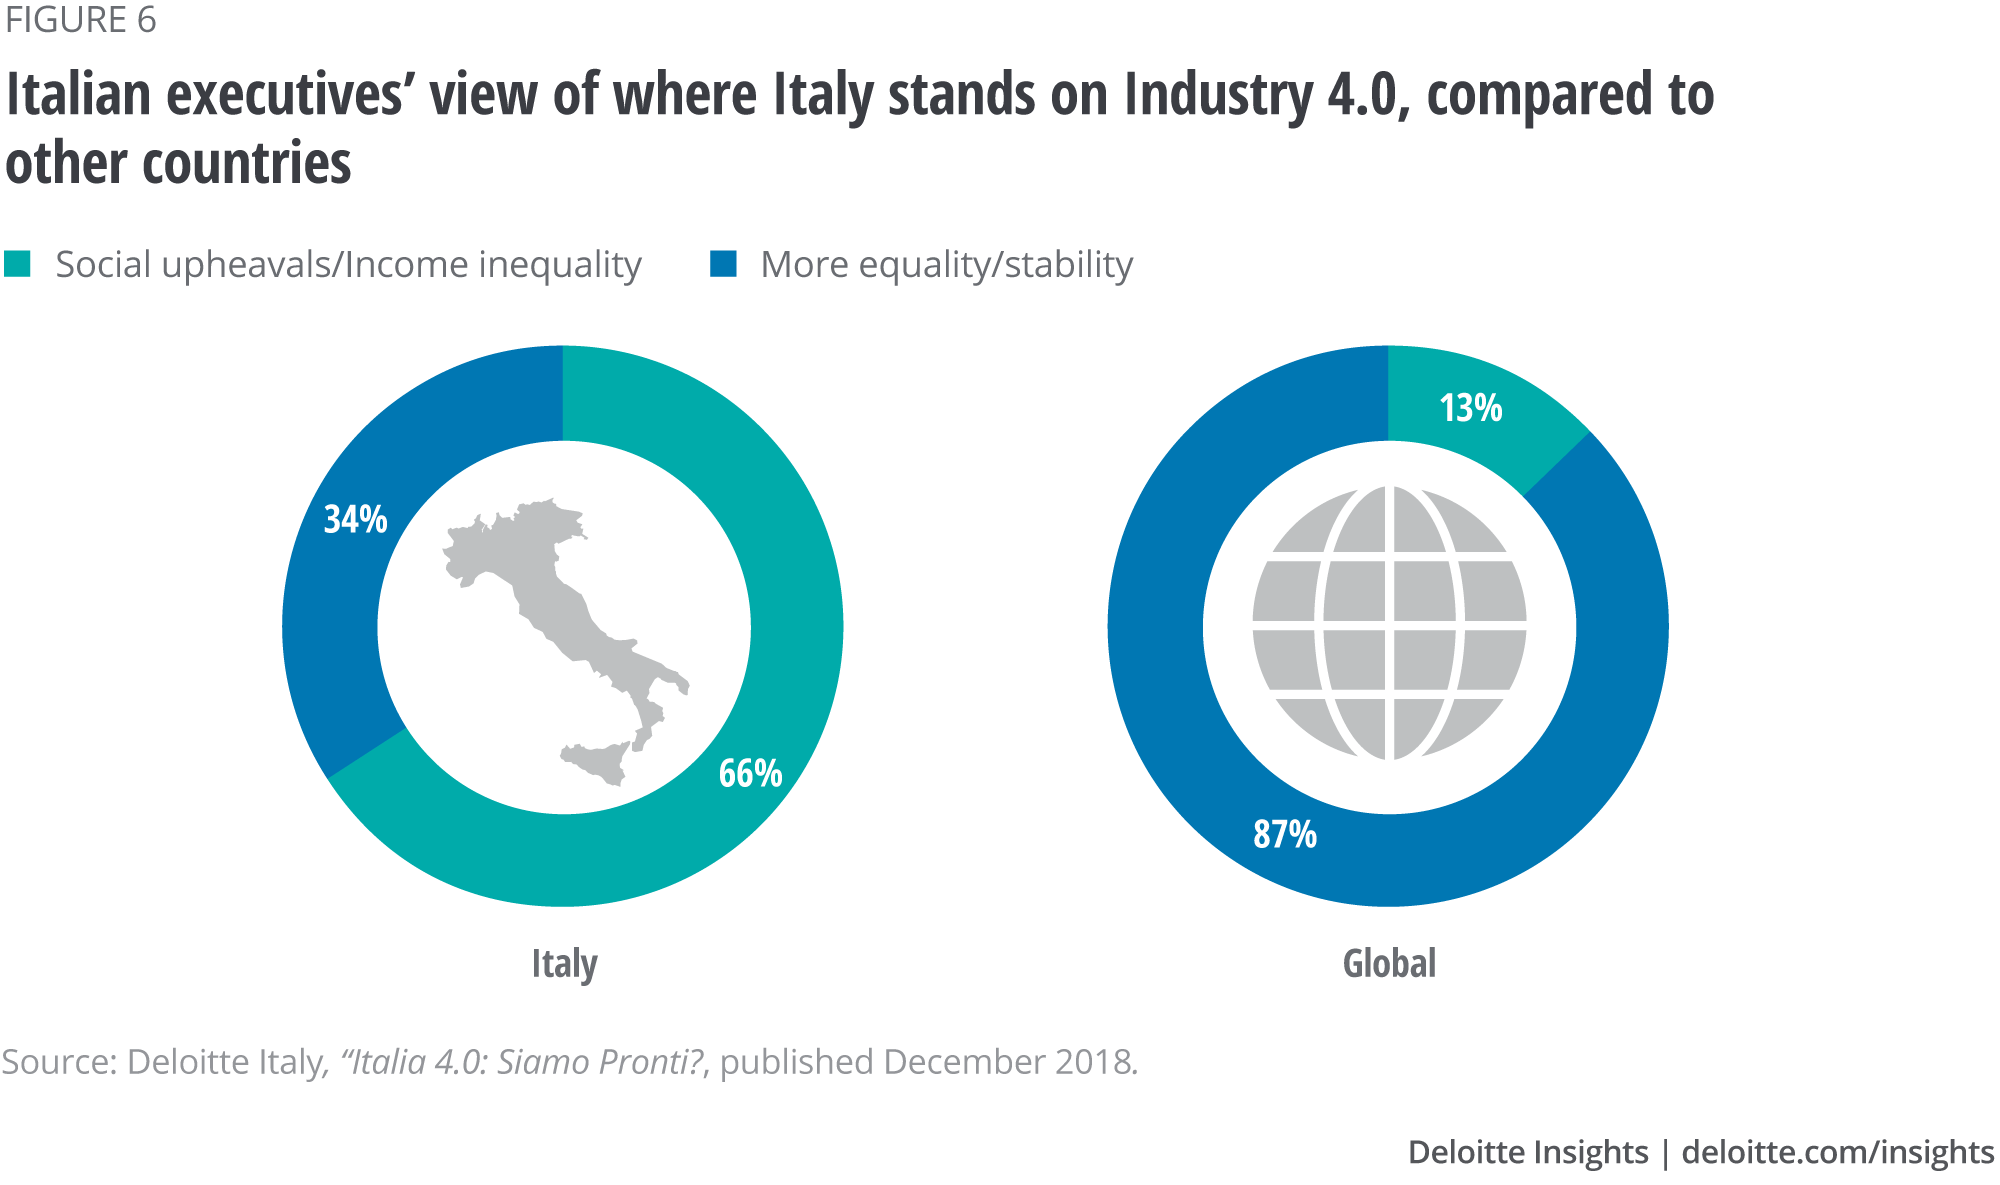 Italian executives' view of where Italy stands on Industry 4.0, compared to other countries